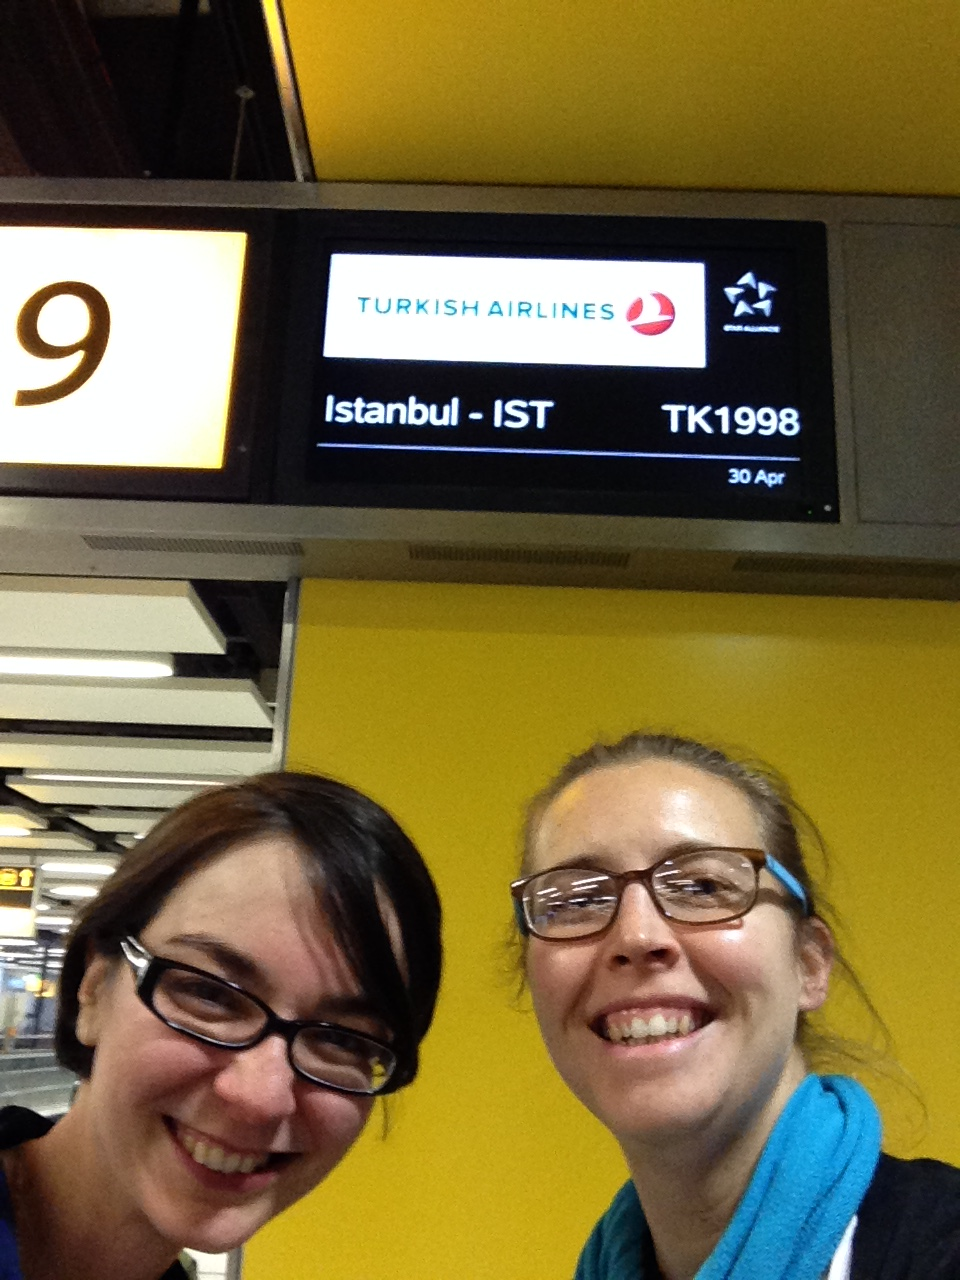 Glasses and smiles: at Gatwick airport, about to board an Istanbul-bound flight on our way to Almaty, Kazakhstan